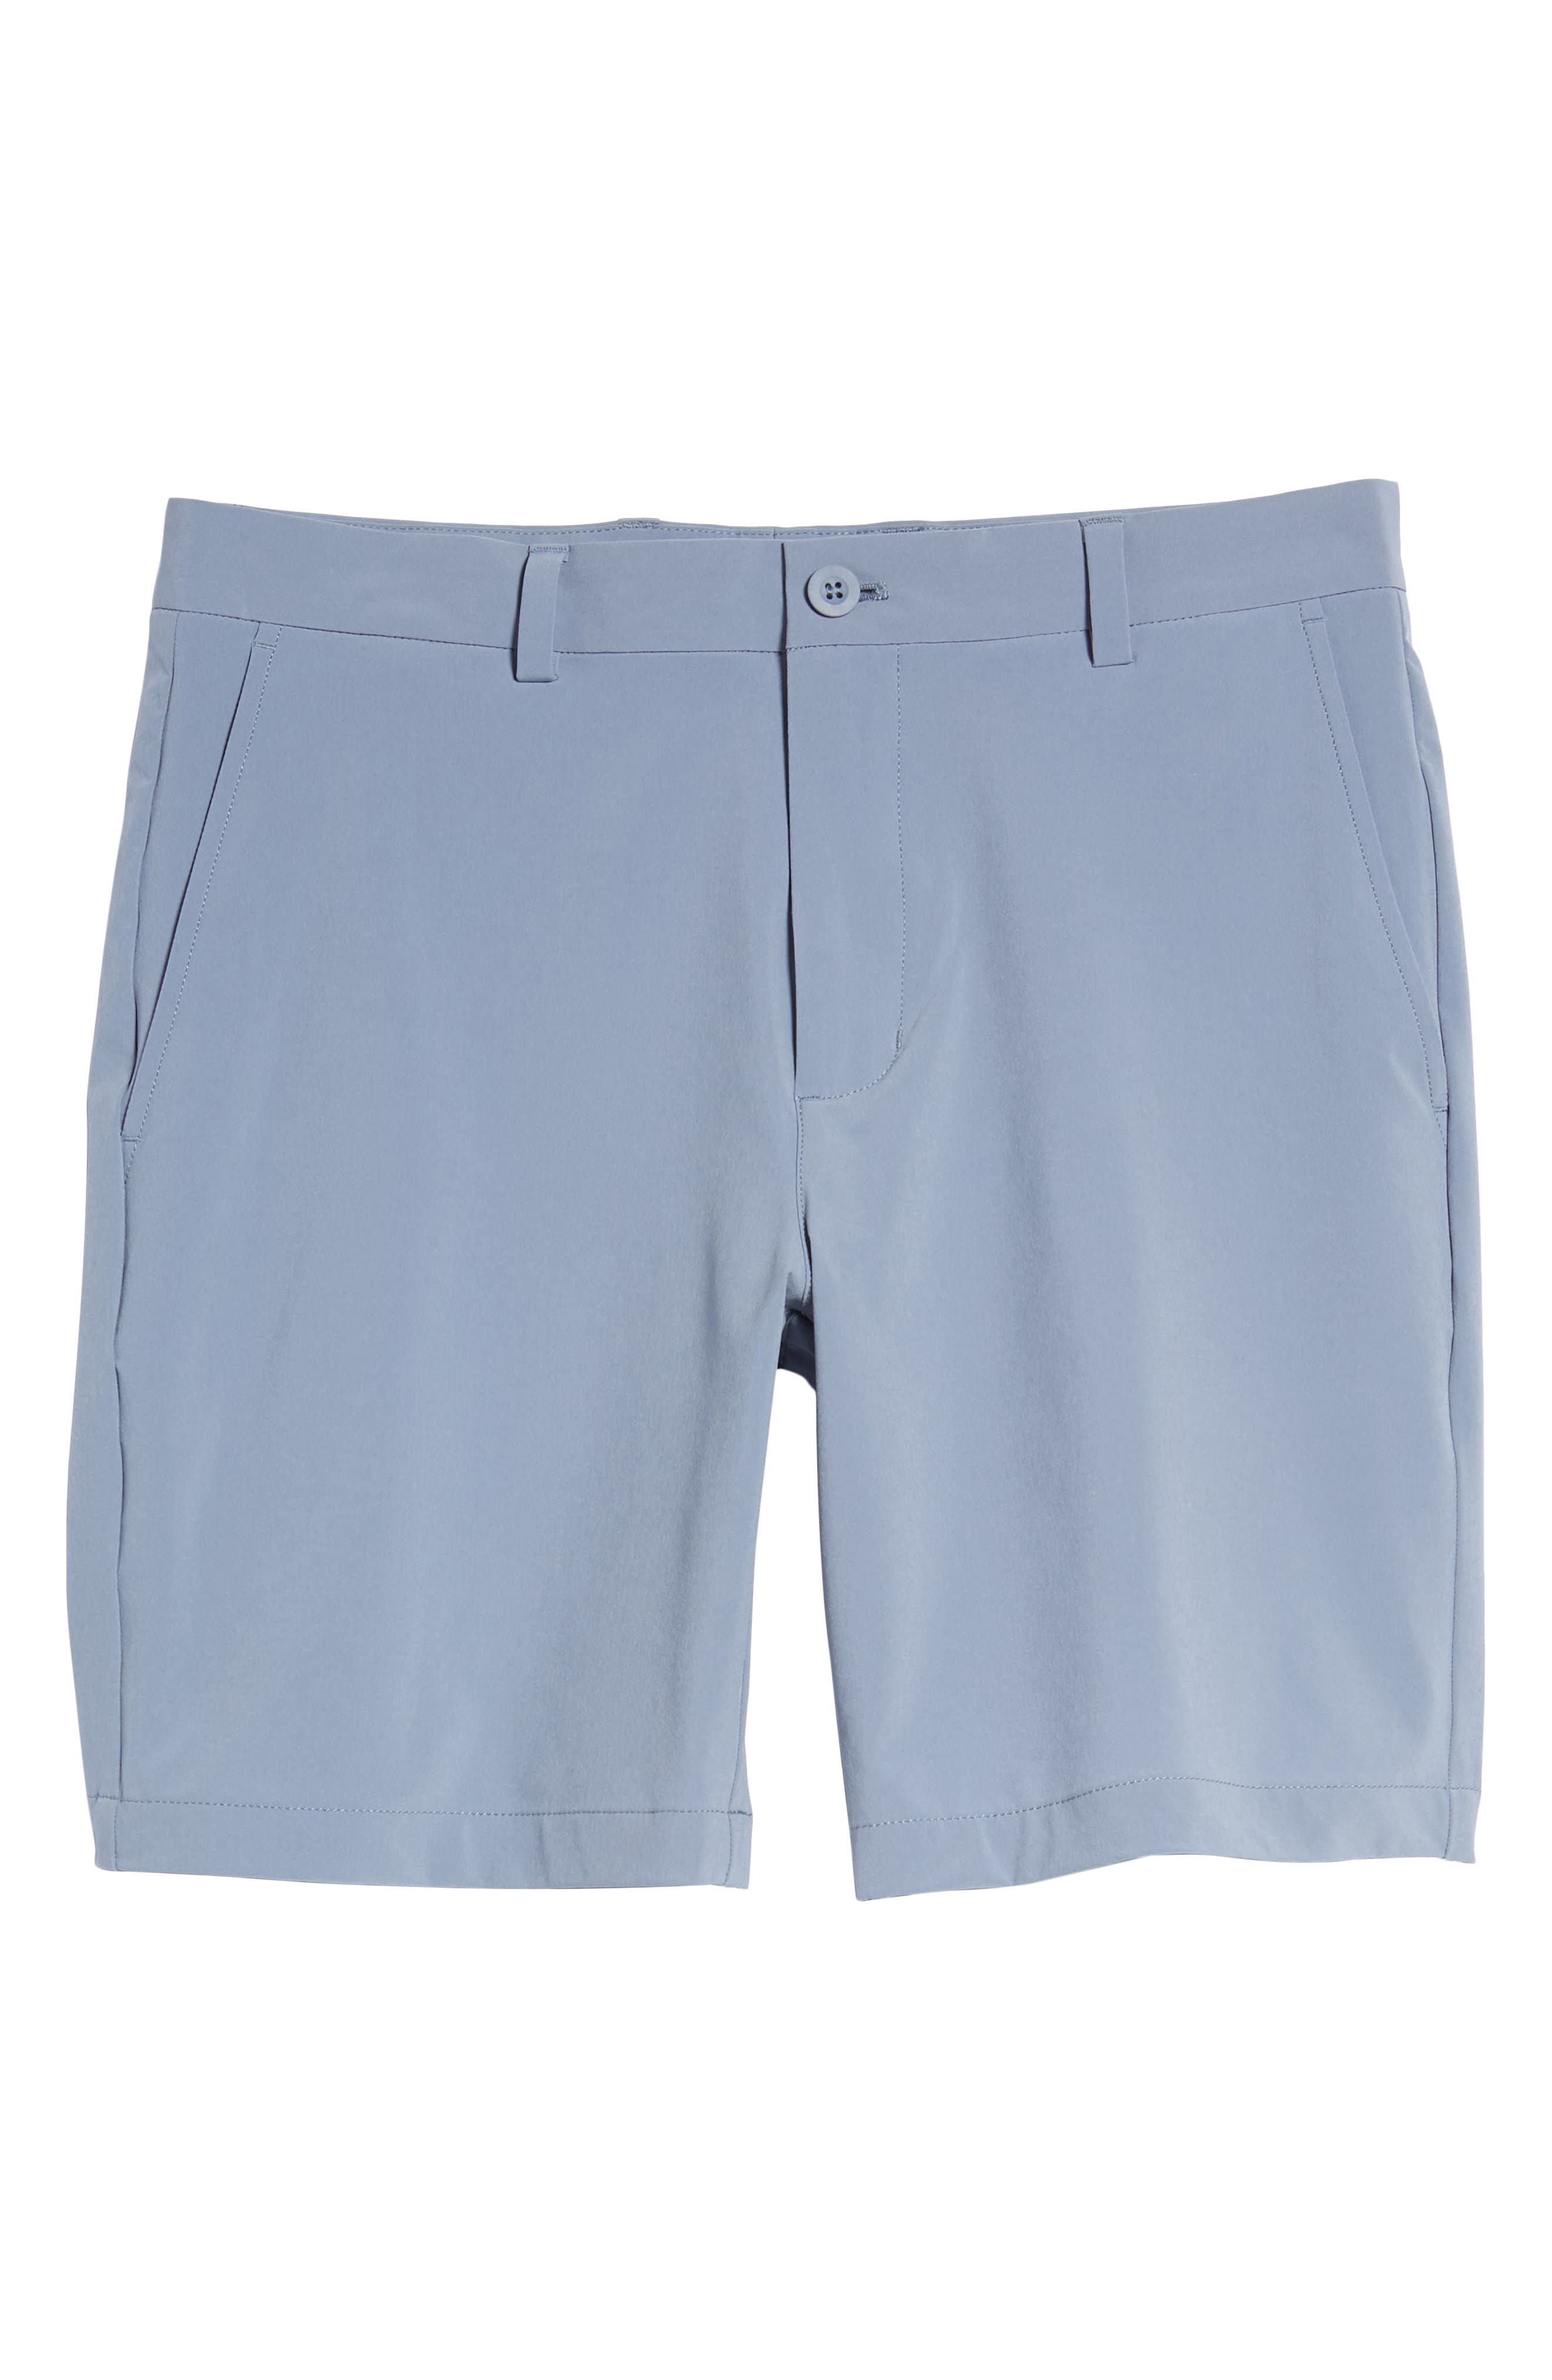 8 Inch Performance Breaker Shorts,                             Alternate thumbnail 6, color,                             Shark